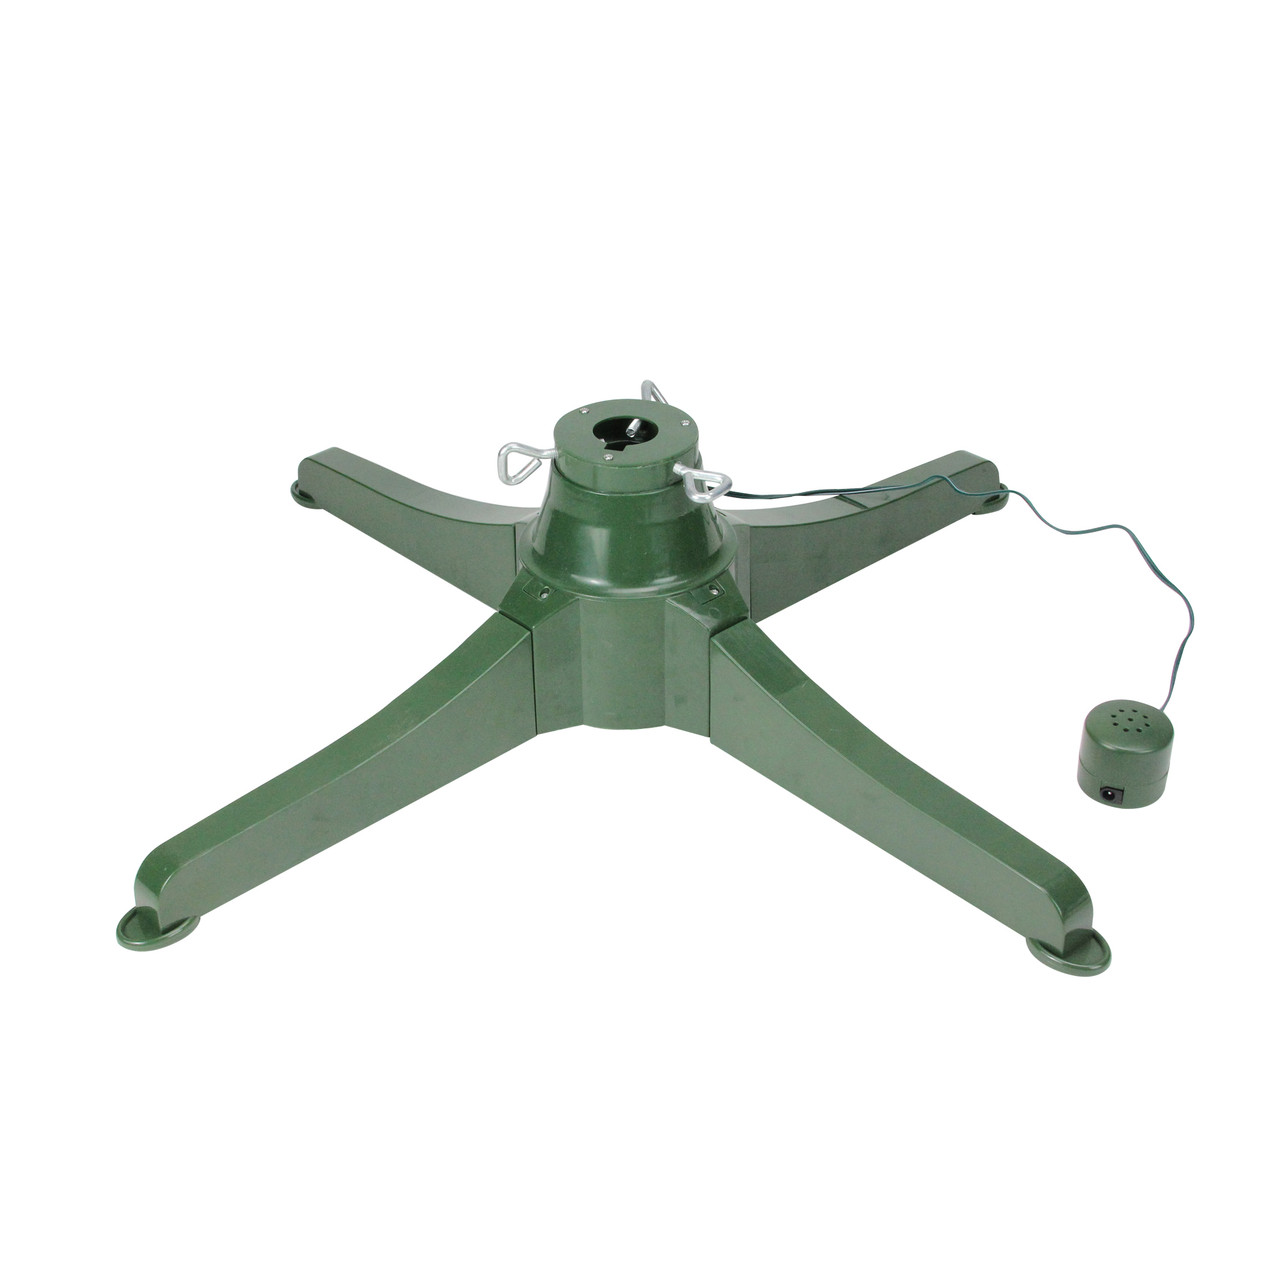 Musical Rotating Christmas Tree Stand - For Artificial Trees | Central